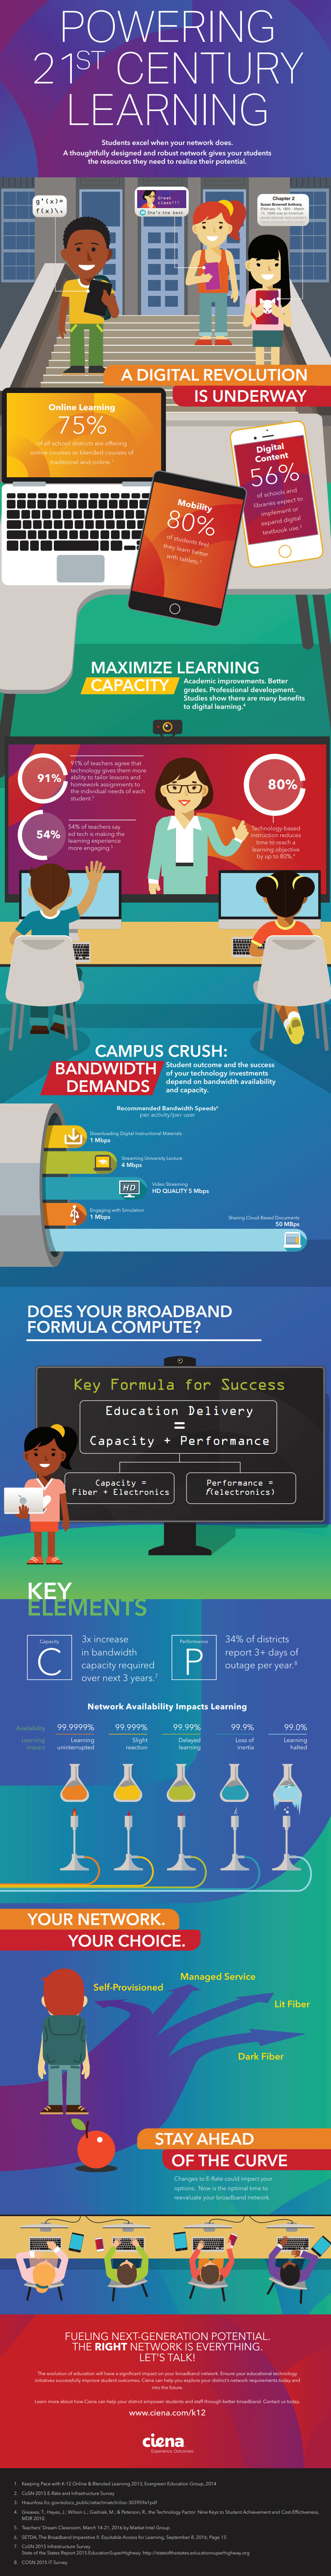 Powering the 21st Century infograph